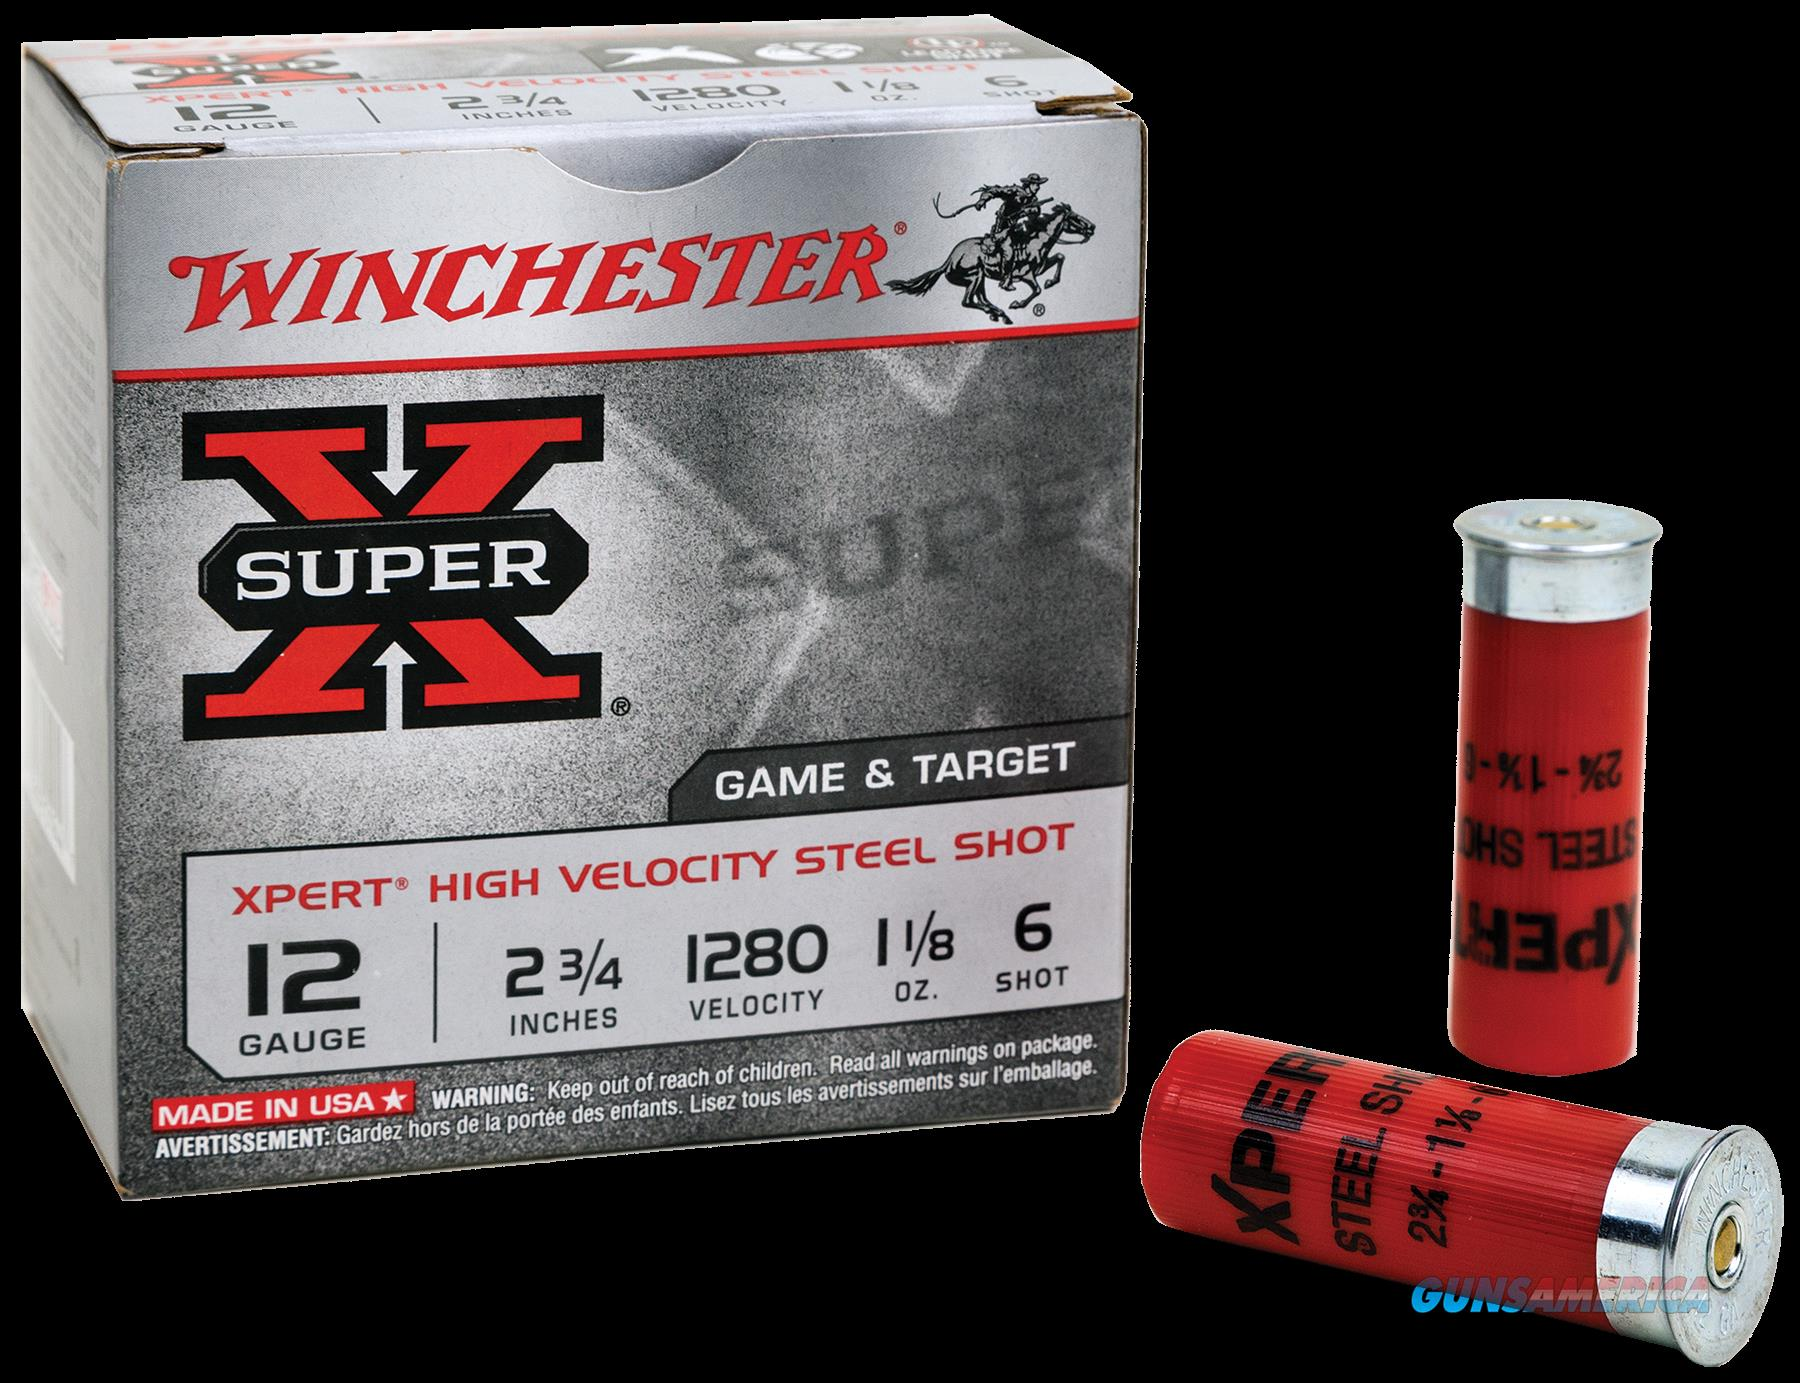 Winchester Ammo Super X, Win We20gtvp6 Xpert Vp  3-4  Stl 100-2  Guns > Pistols > 1911 Pistol Copies (non-Colt)